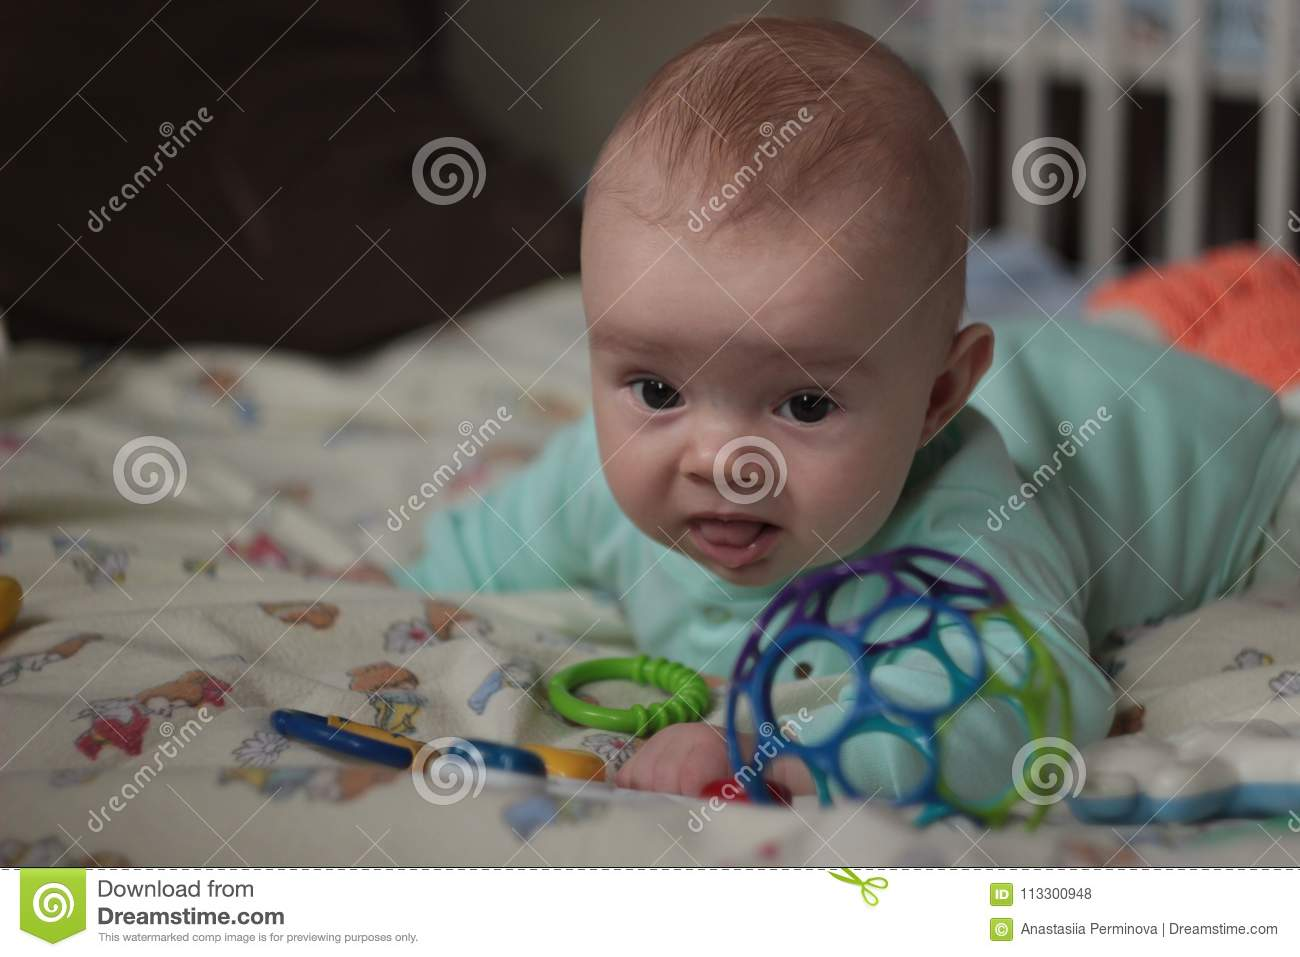 A 5 Months Old Baby Playing With Toys Stock Photo Image Of Plays Playing 113300948